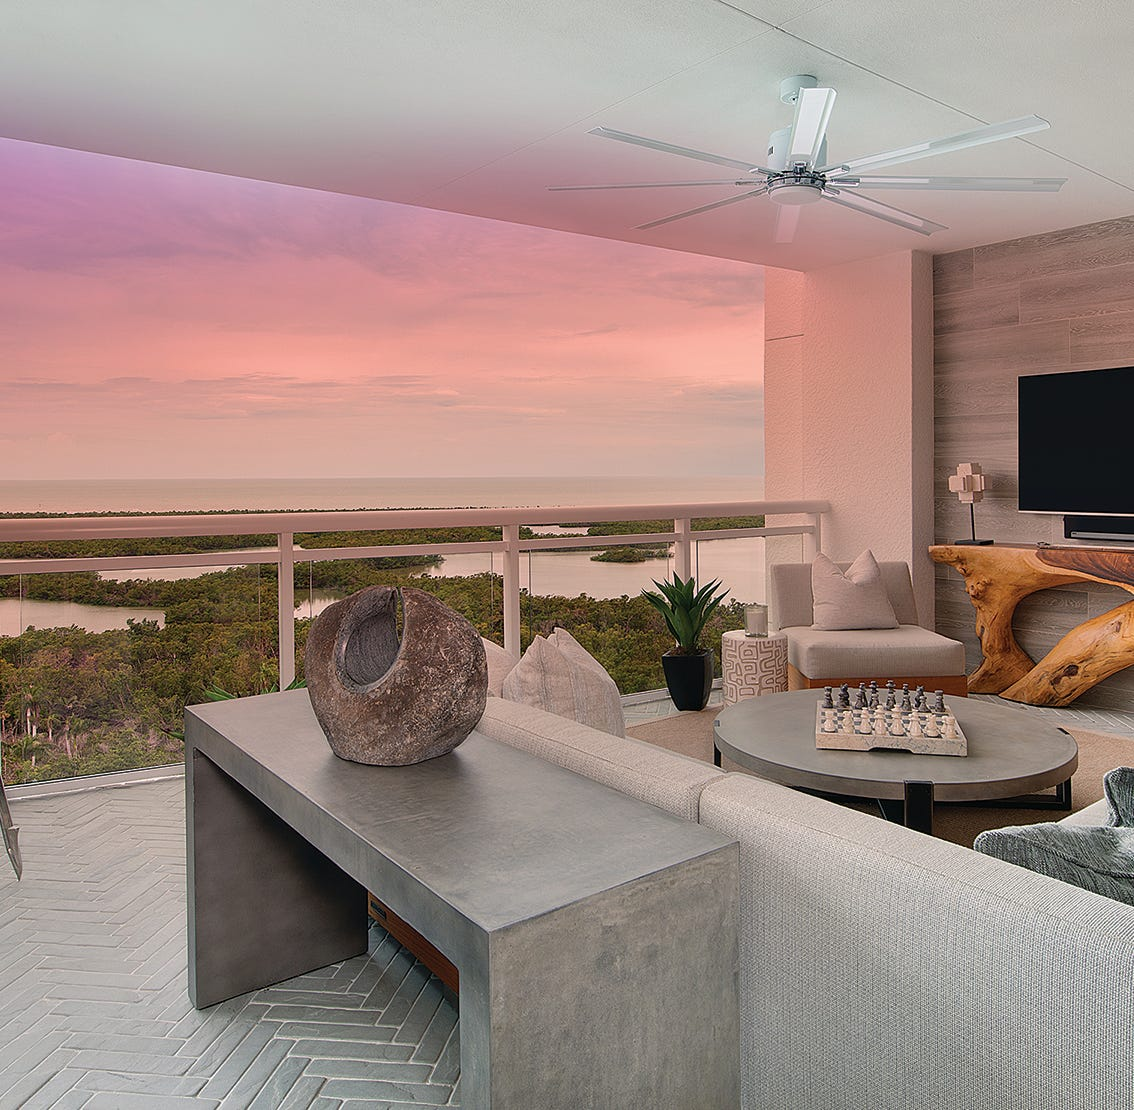 Sales remain extremely strong at Kalea Bay's second tower